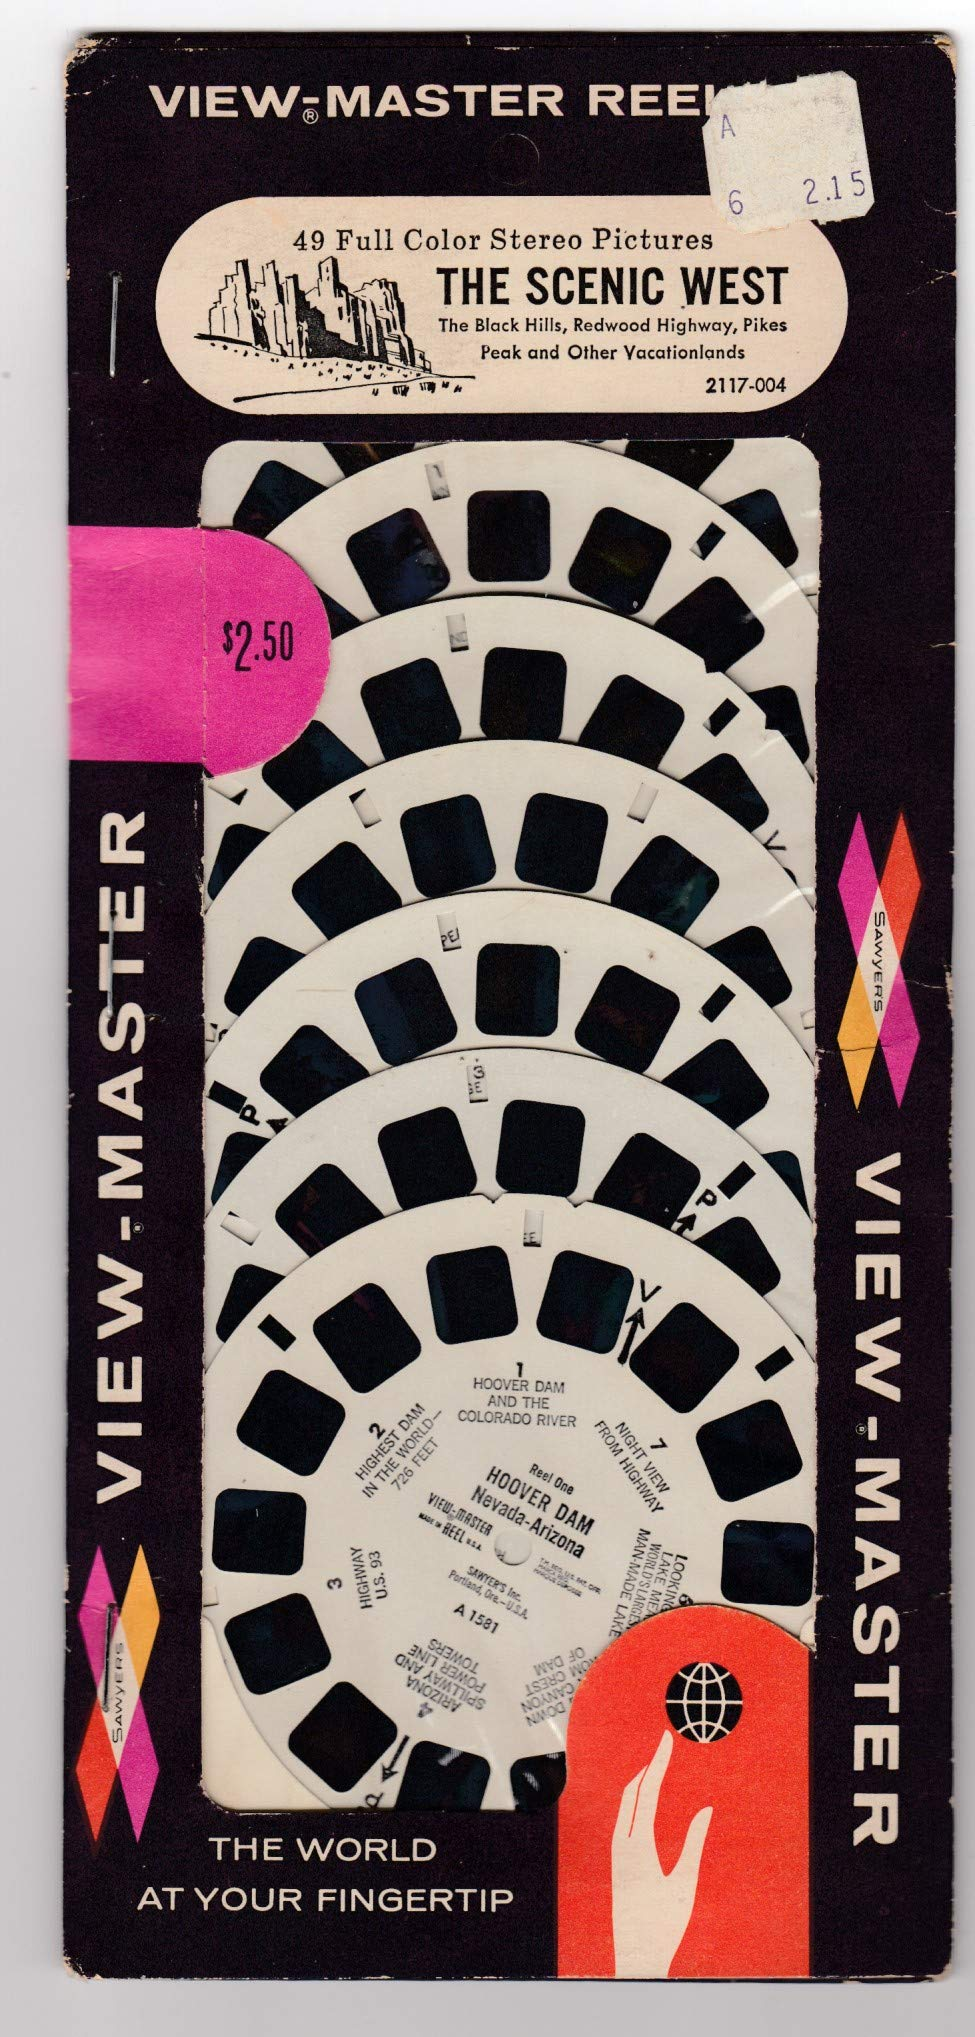 View Master SAWYER'S Reel PAK The Scenic WEST Unopened 7 REELS Including The Black Hills, Redwood Highway, Pikes Peak, and Vacationlands by View Master (Image #1)